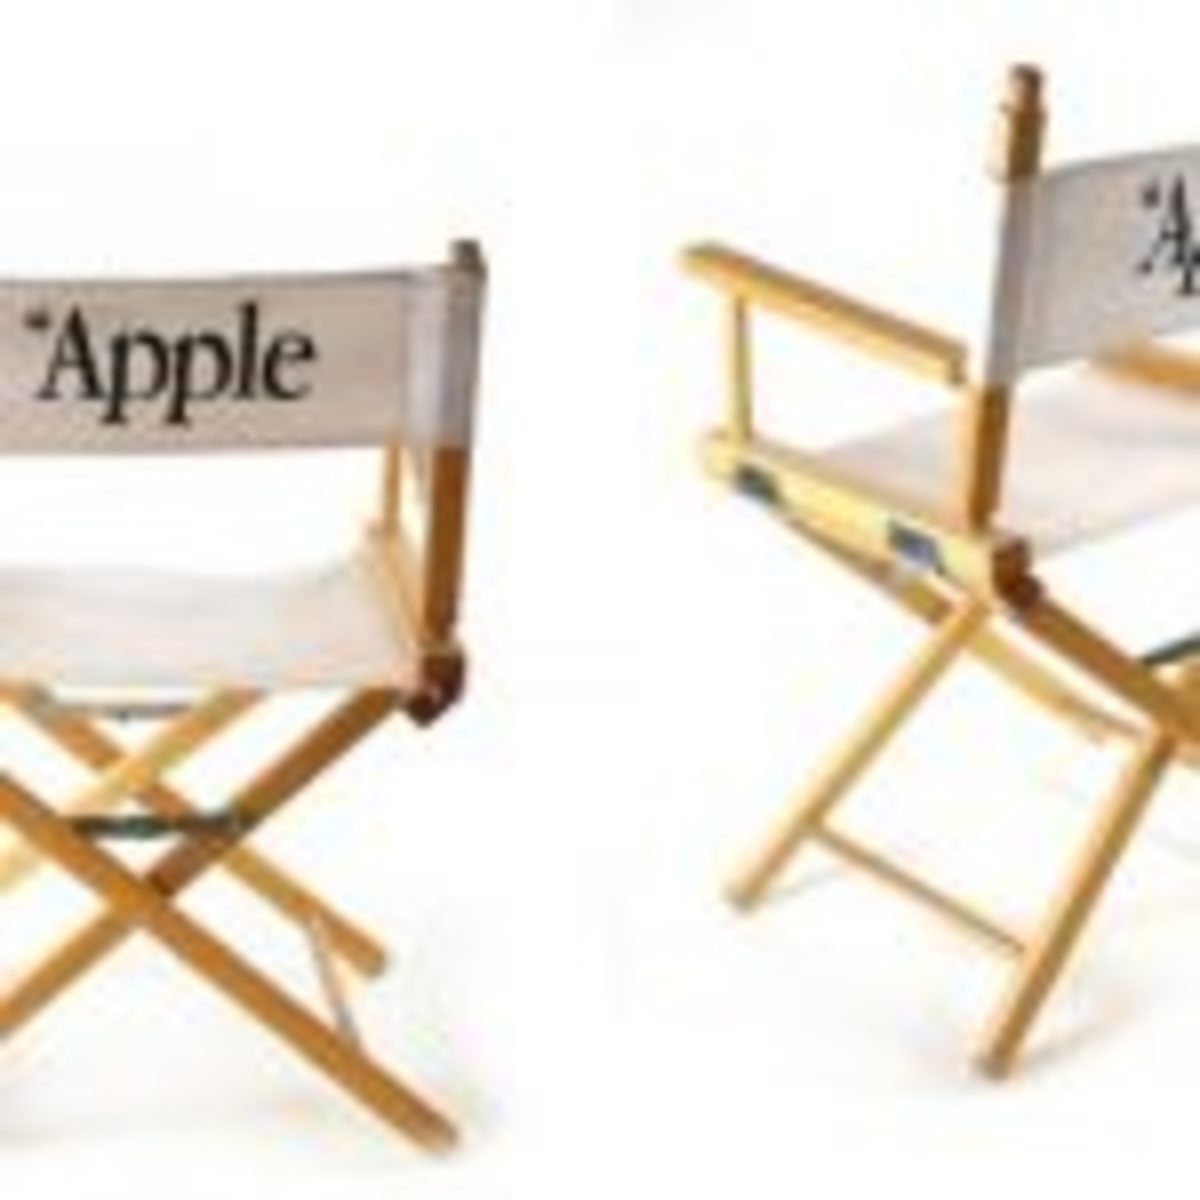 Apple director chairs